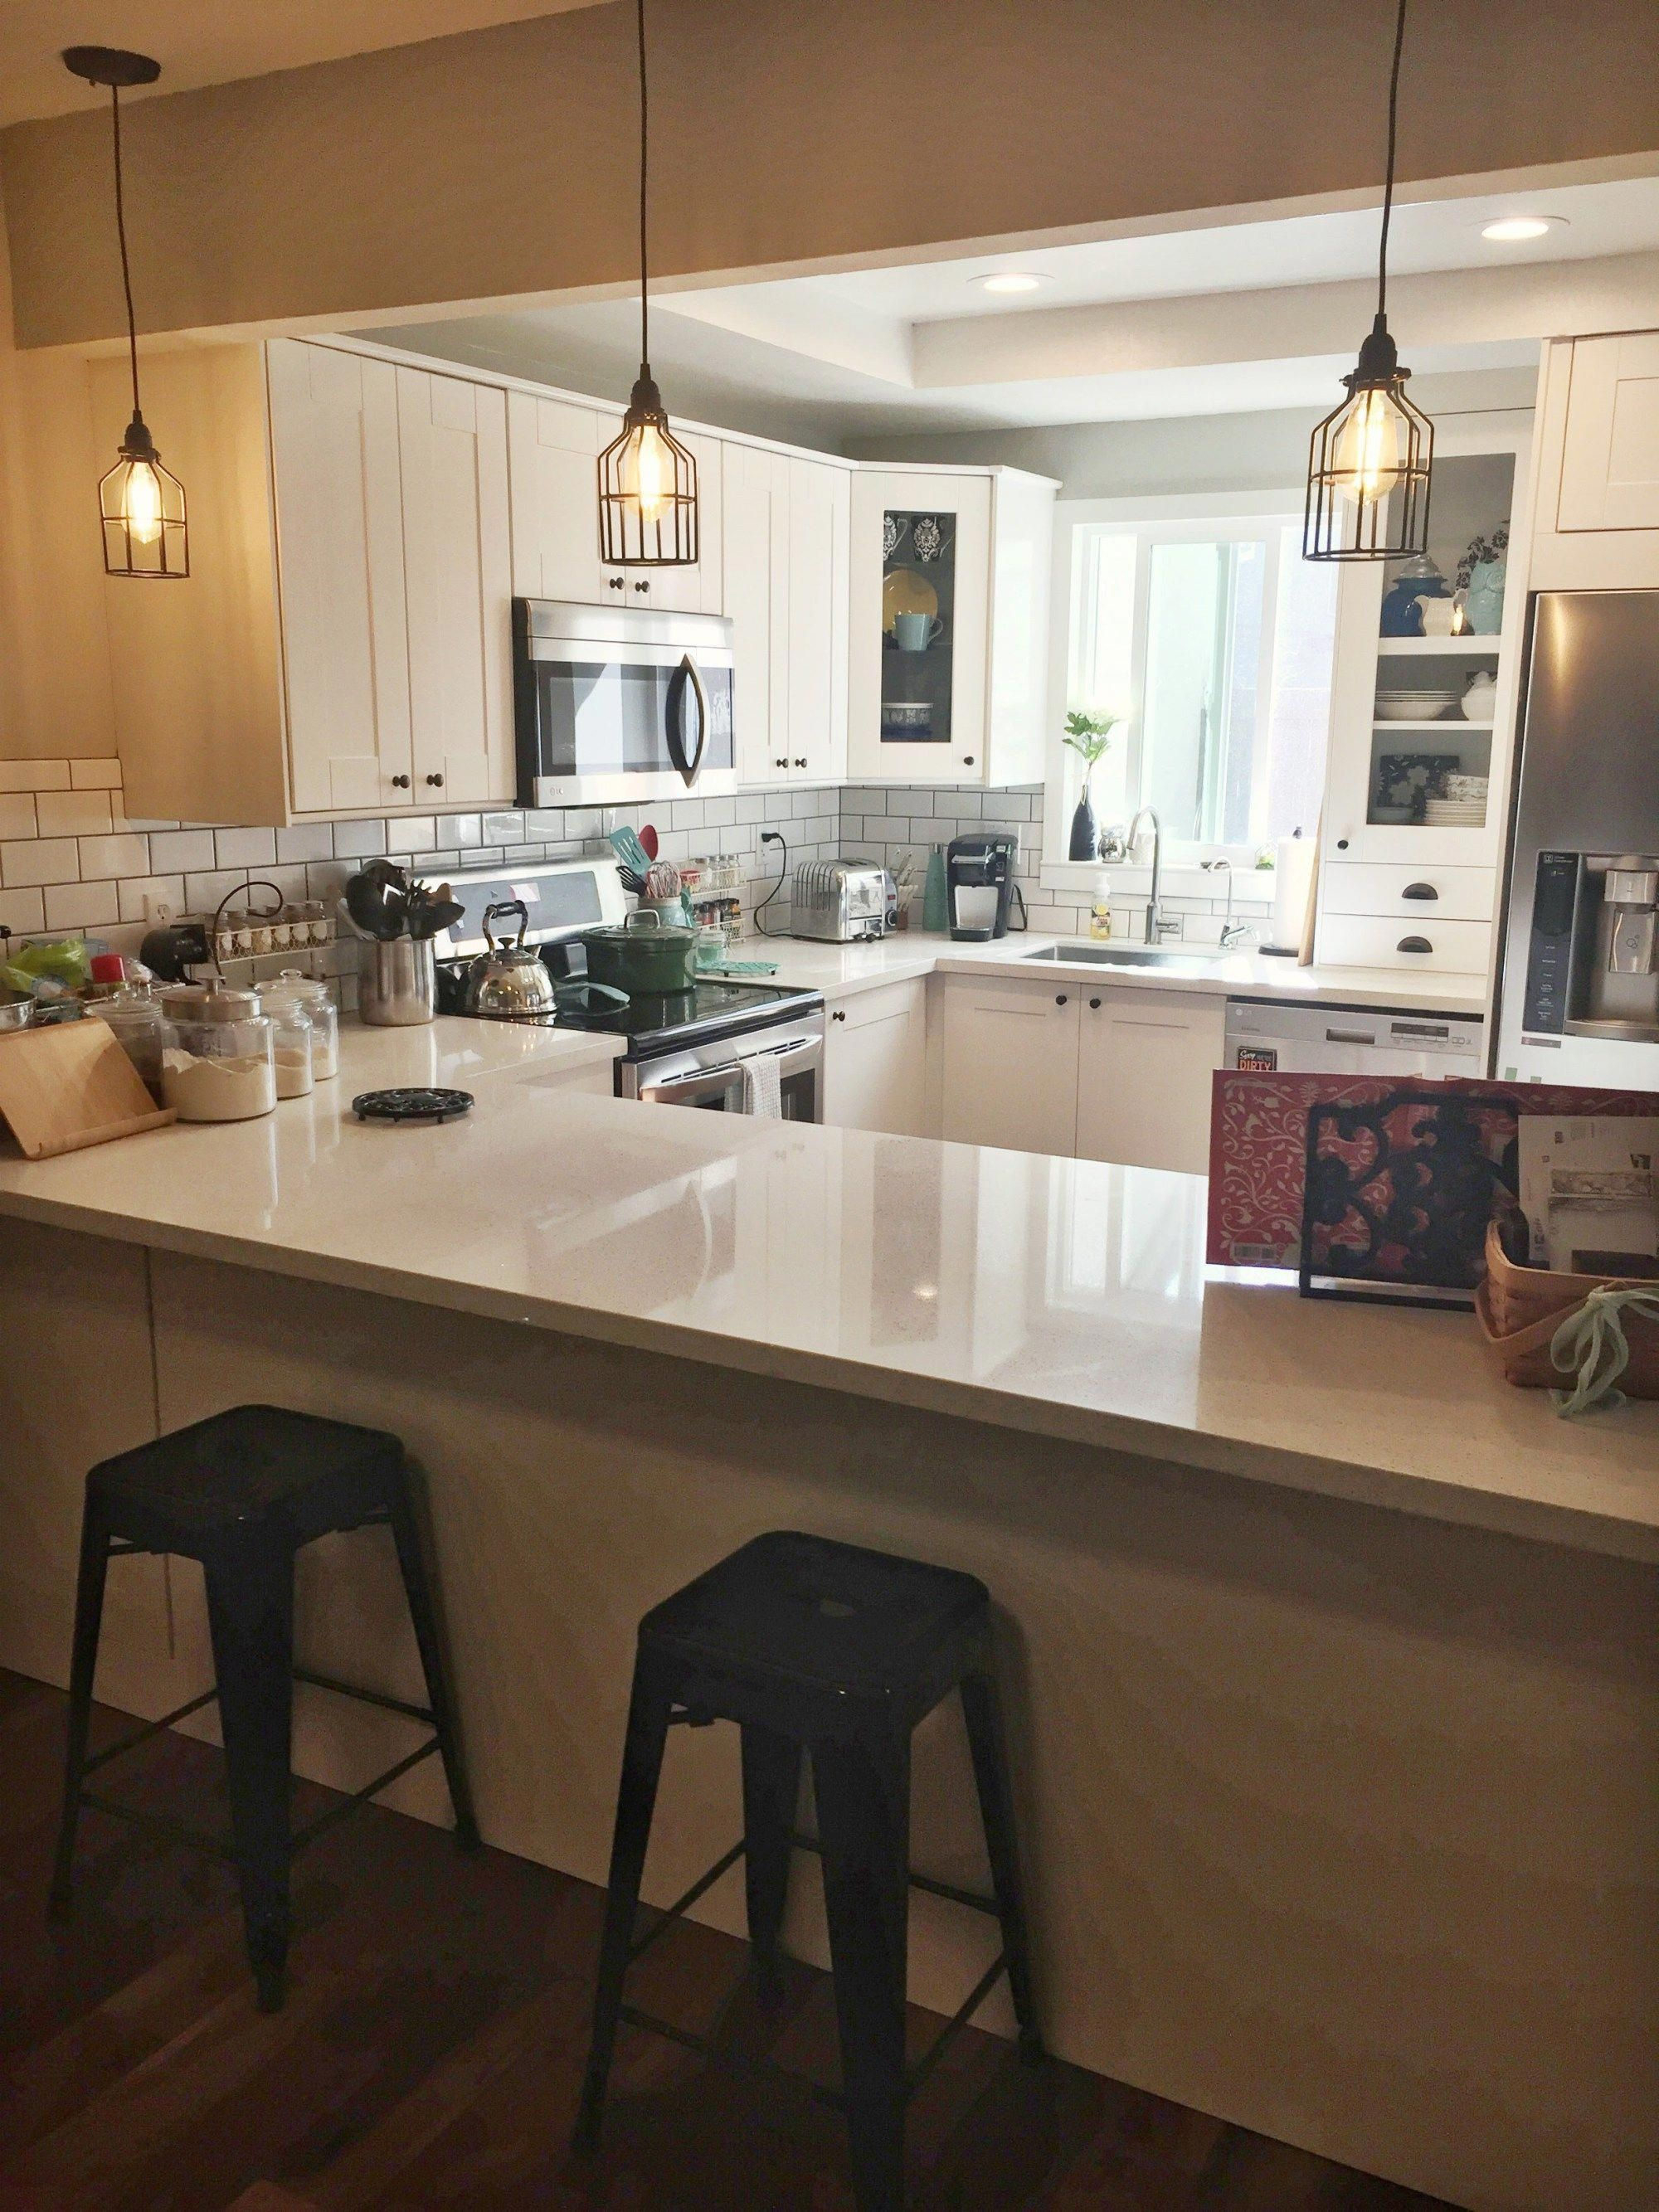 kitchen renovation reveal before and after pictures kitchen reveal before & after kitchen re